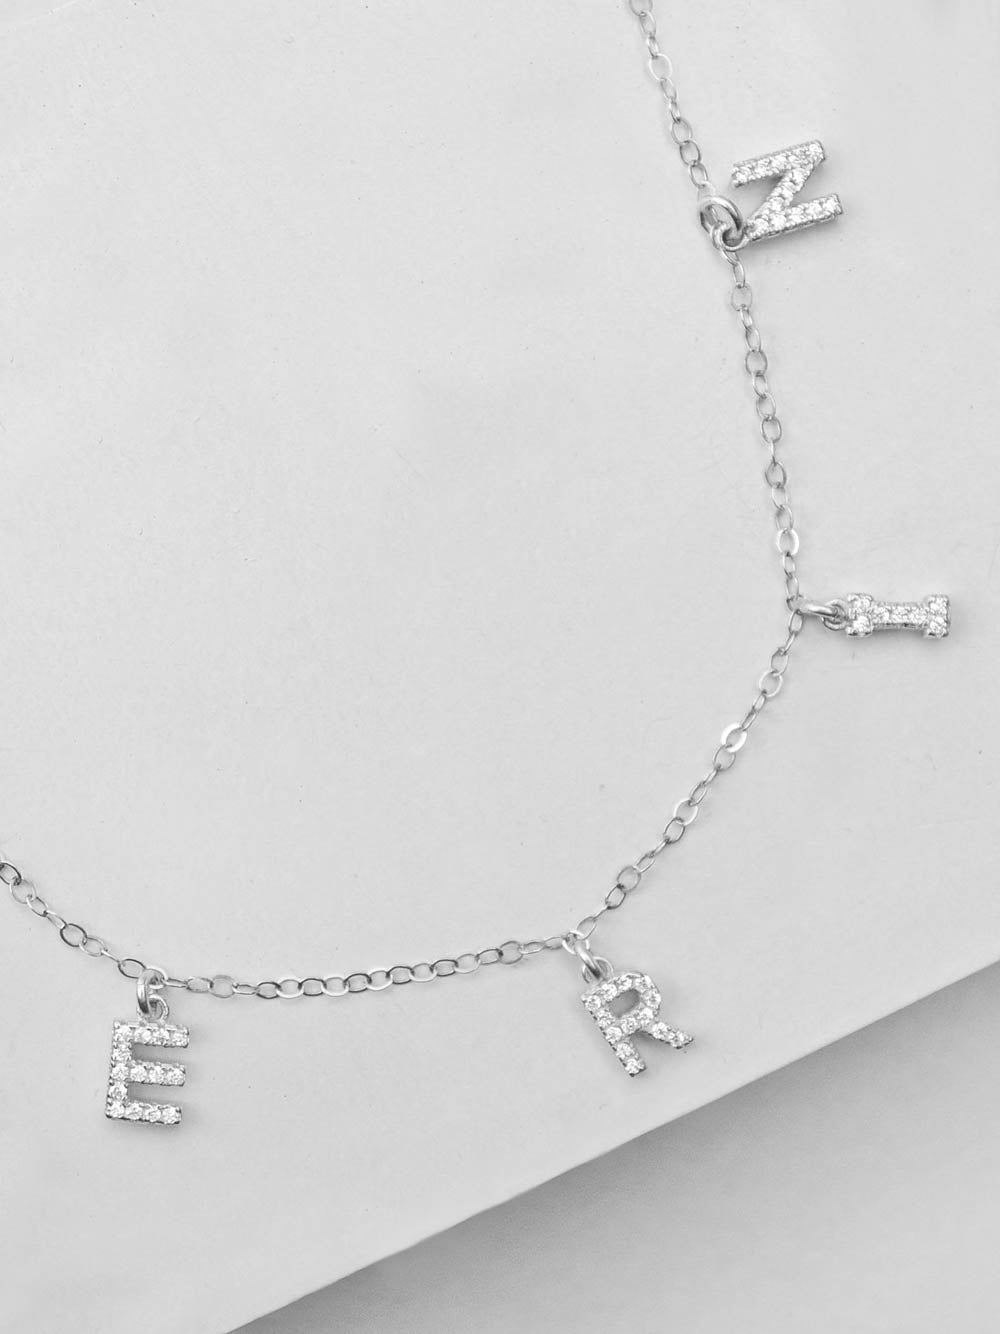 Sterling Silver Name Initial Necklace by The Faint Hearted Jewelry